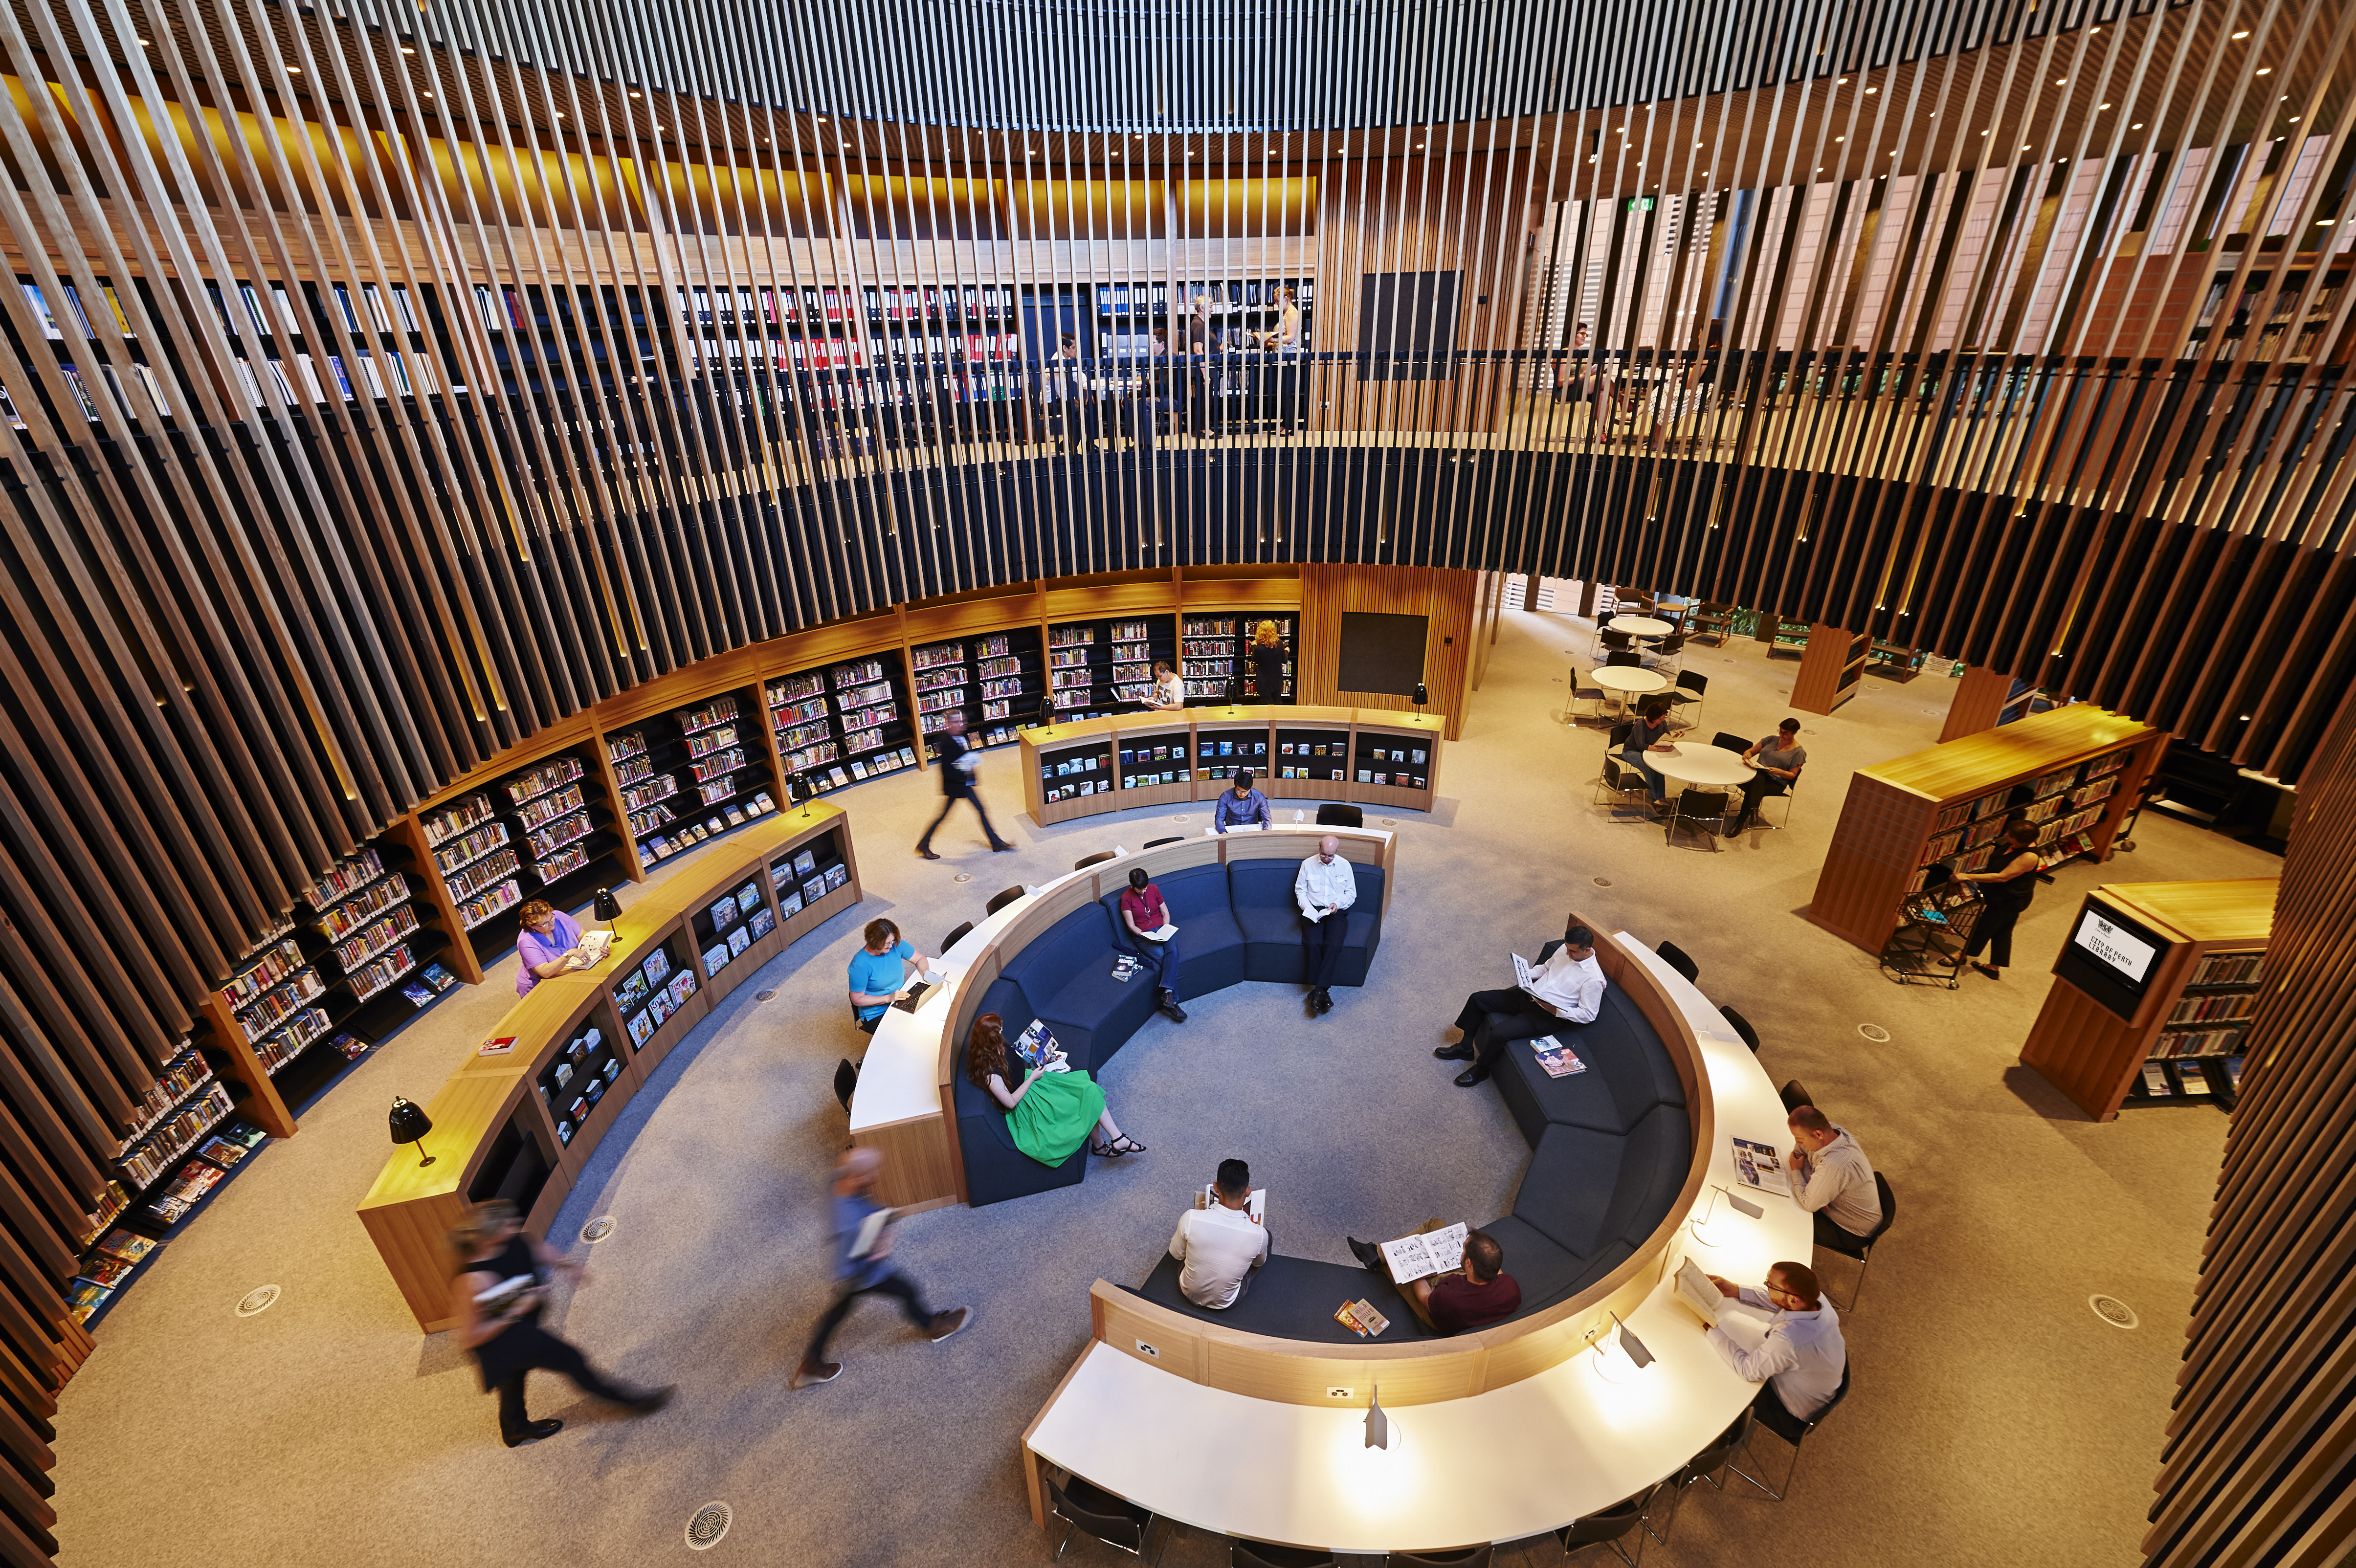 City of Perth Library interior